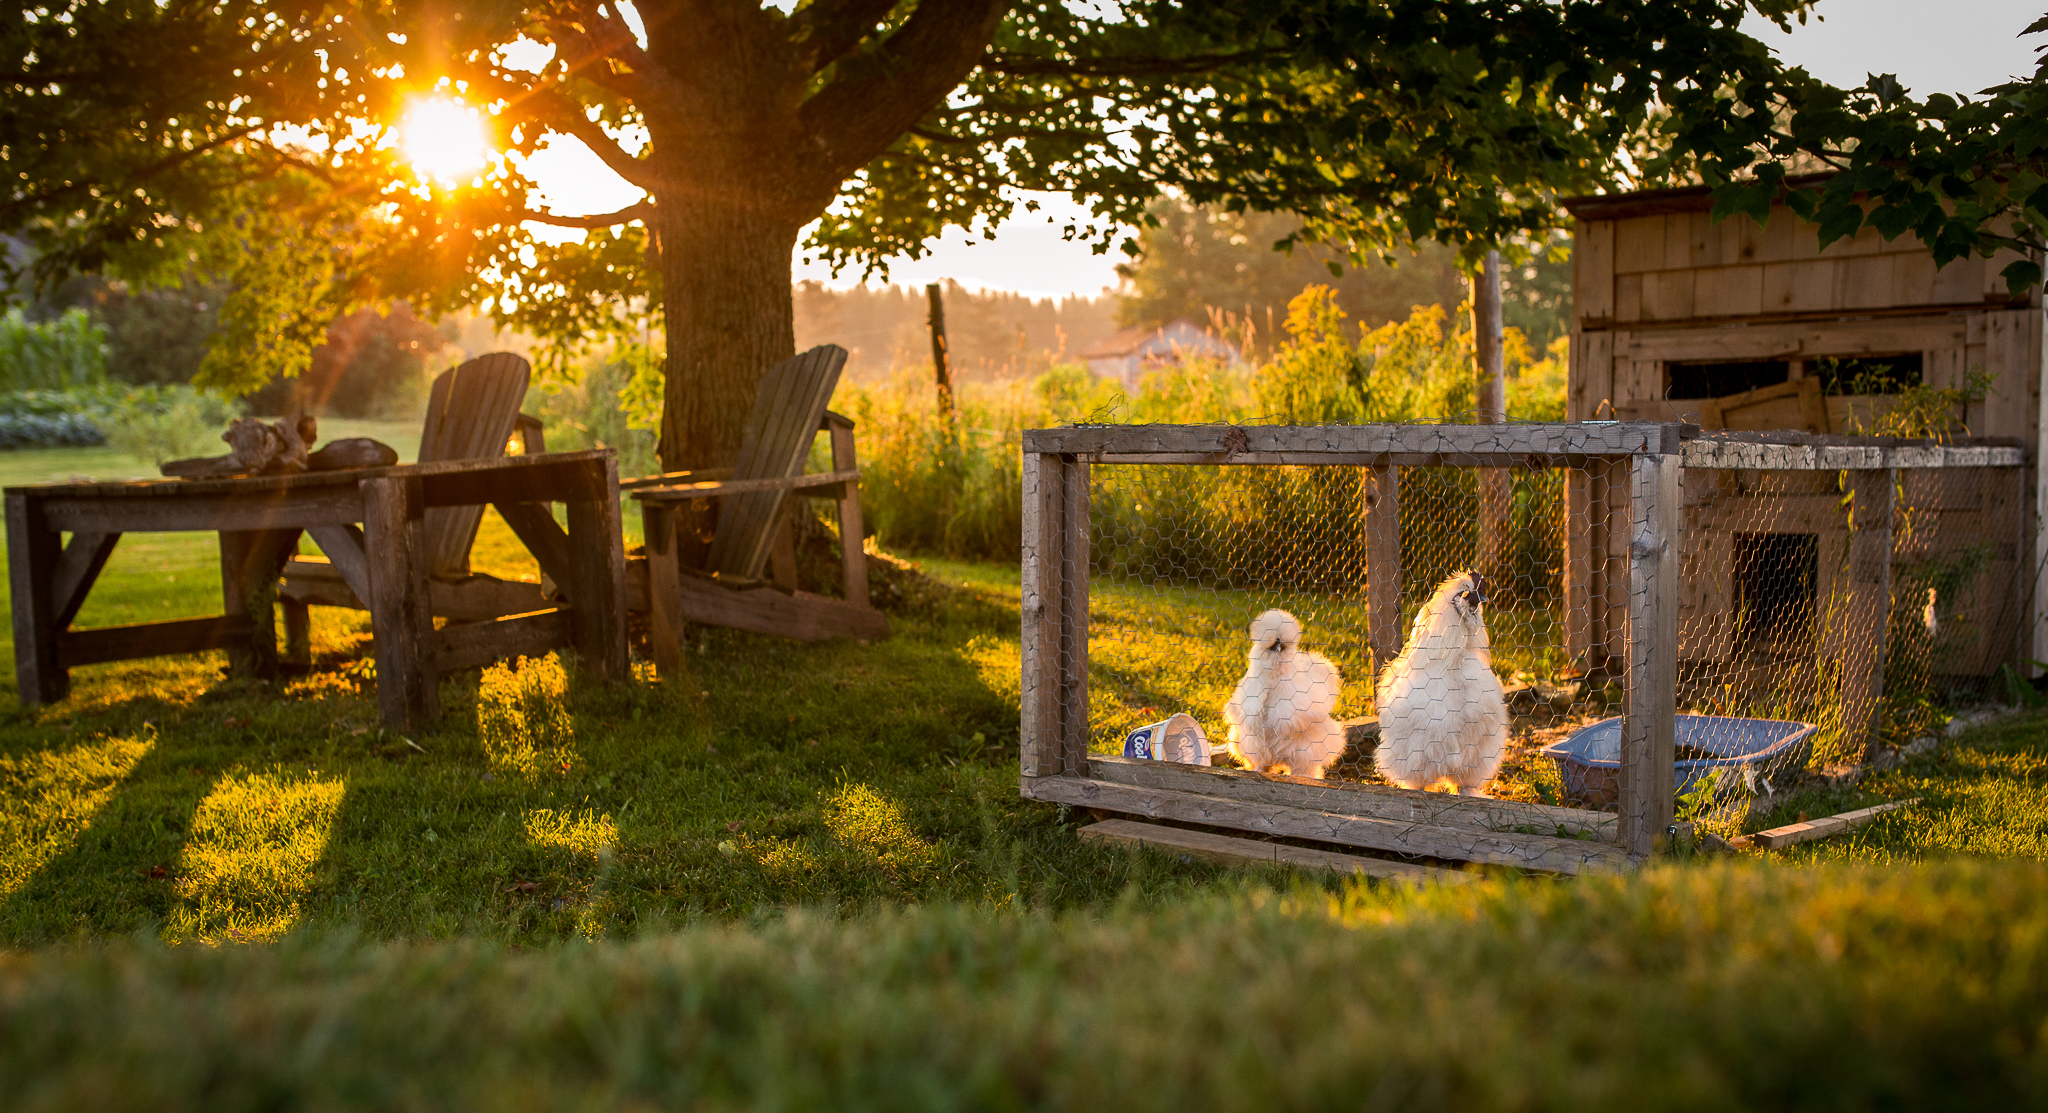 Silky chickens on the farm at sunrise